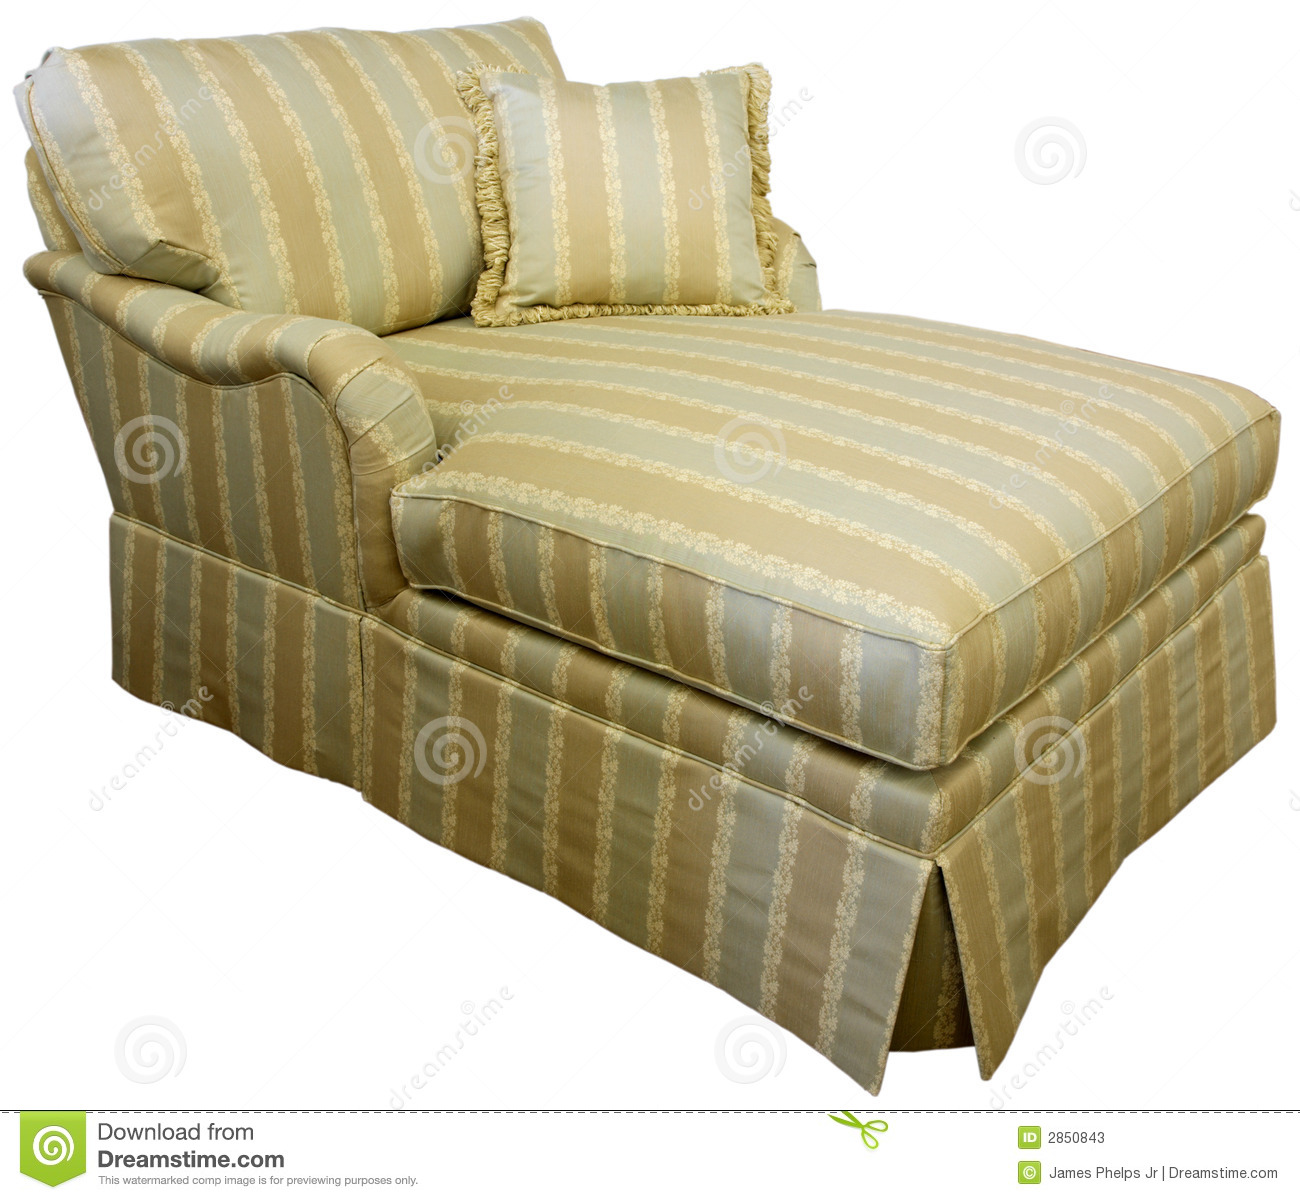 Royalty-Free Stock Photo. Download Chaise Lounge Sofa ...  sc 1 st  Dreamstime.com : chaise lounge sleeper chair - Sectionals, Sofas & Couches